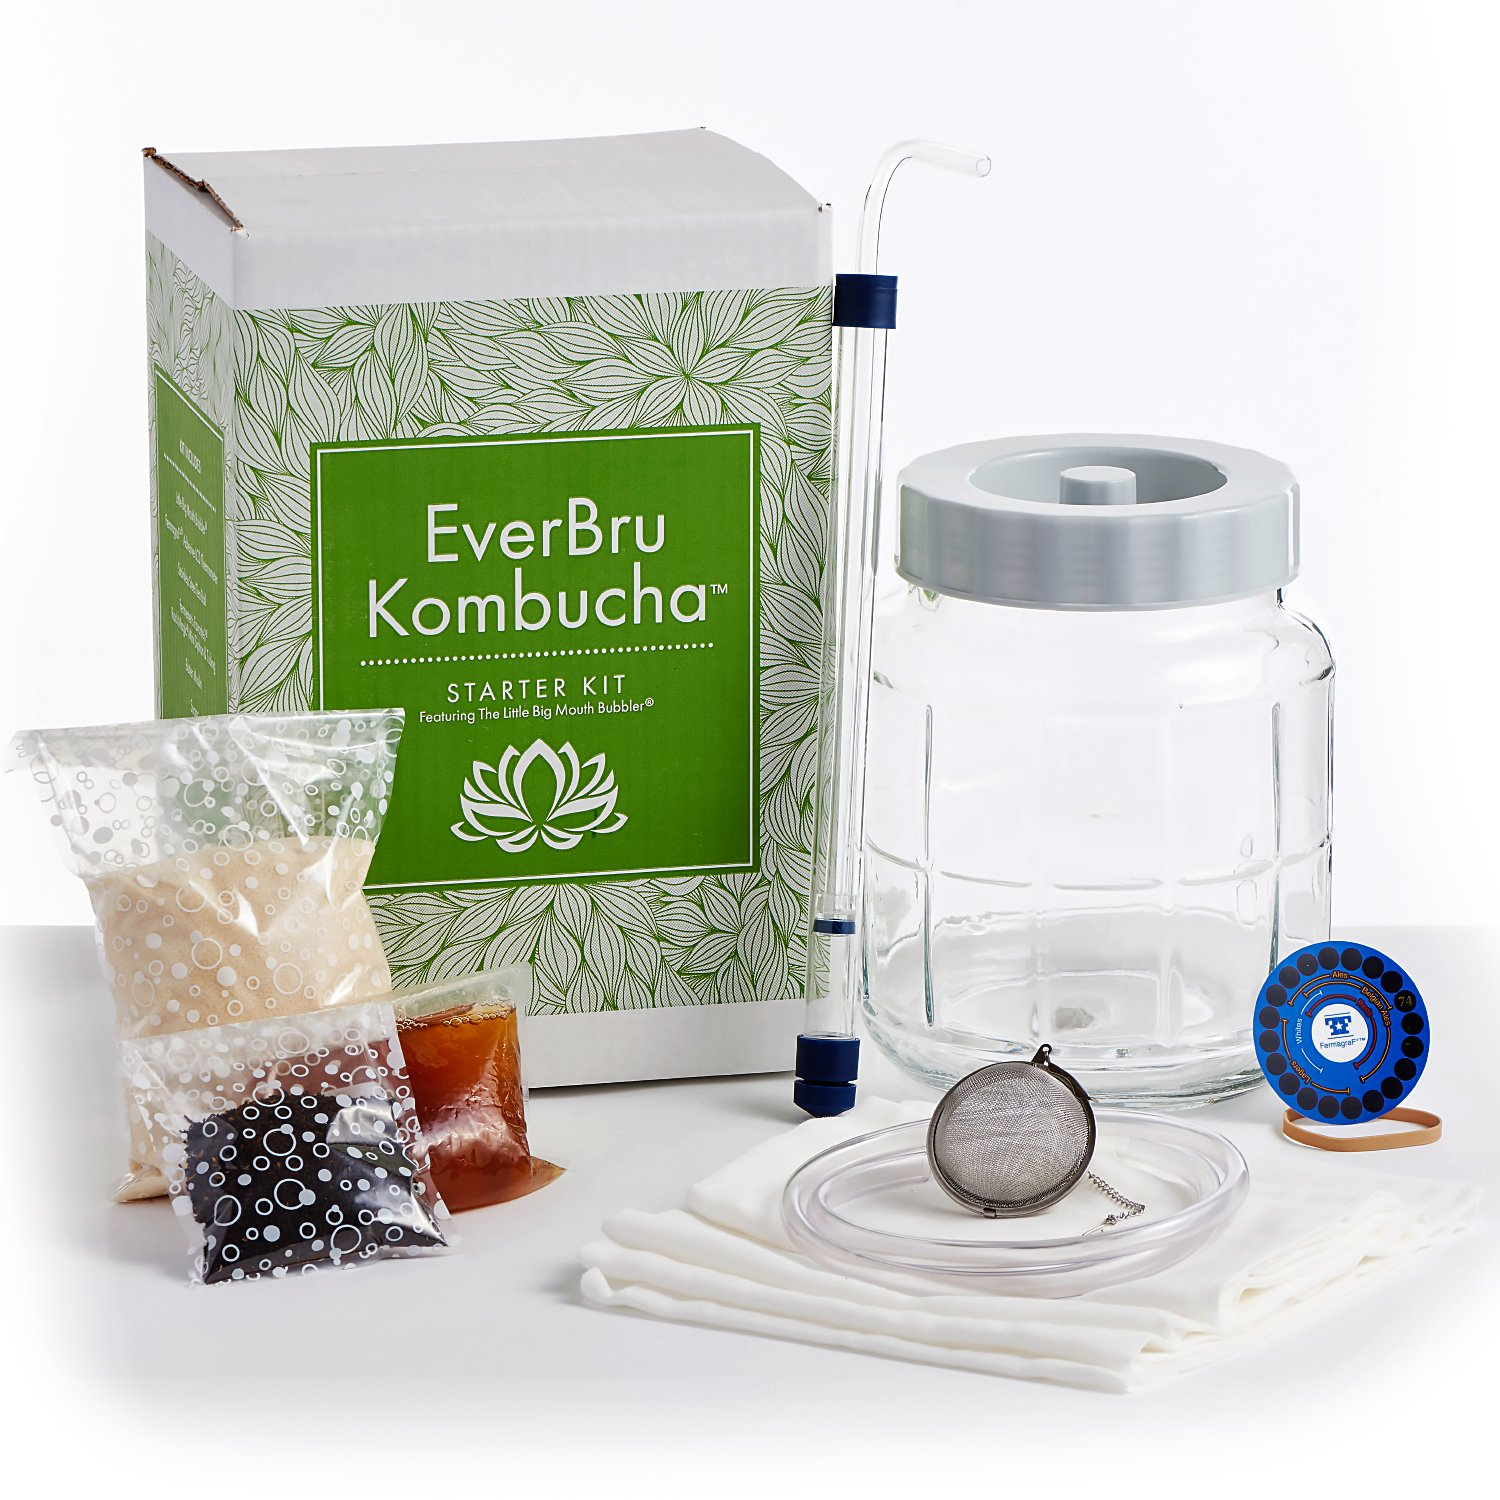 Everbru Kombucha Continuous Brewing Deluxe Starter Kit With Scoby & Glass Fermenter Jar Equipment For Making 1 Gallon Batches At Home Northern Brewer